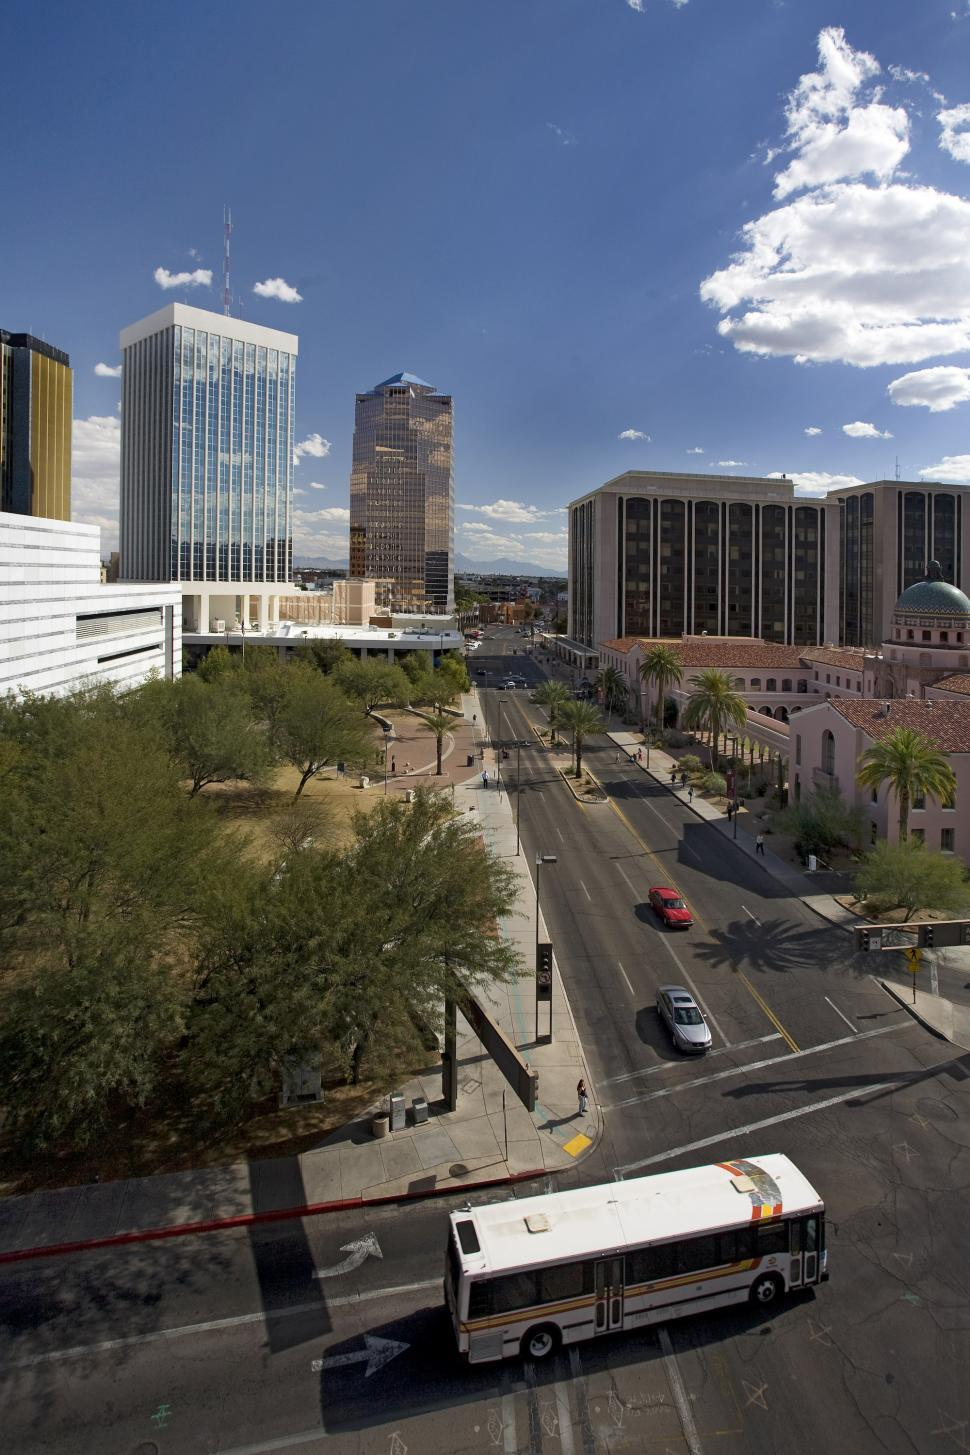 Download Free Stock HD Photo of Downtown Tucson with Bus Online